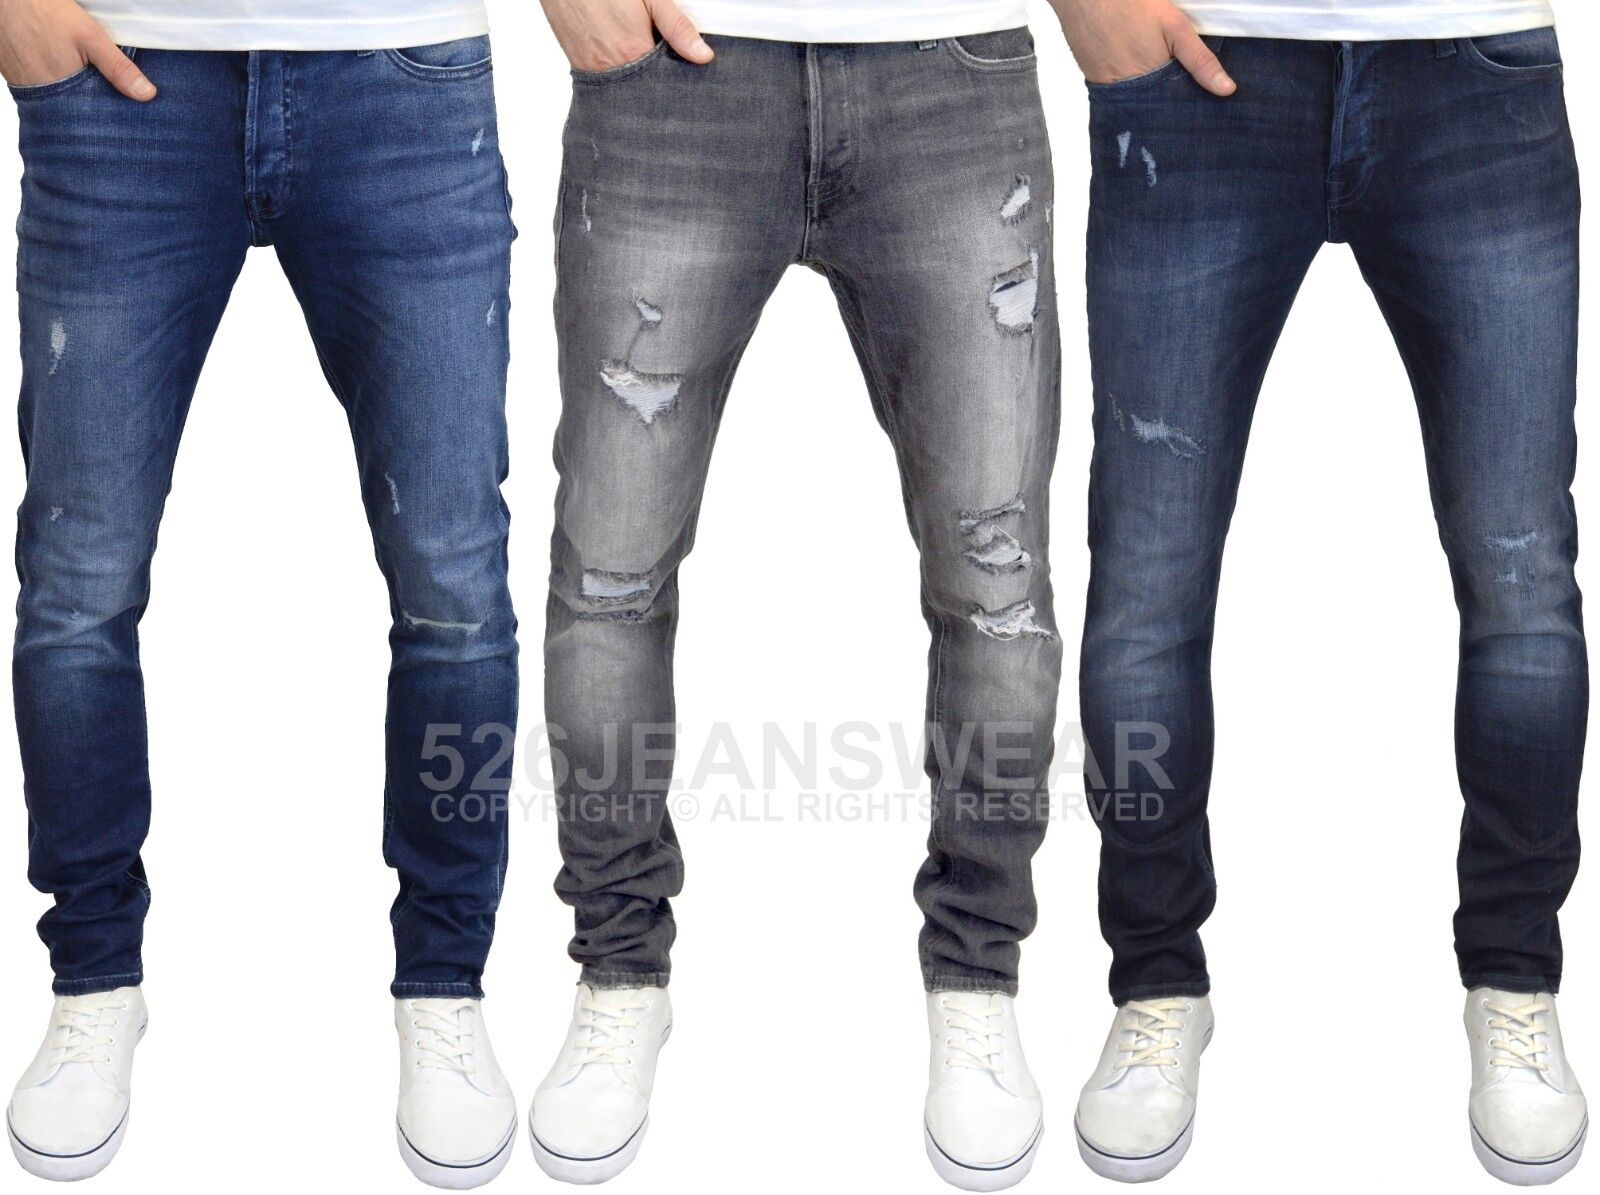 Jack /& Jones Glenn jeans pantaloni pants uomo effetto vissuto denim stretch slim fit